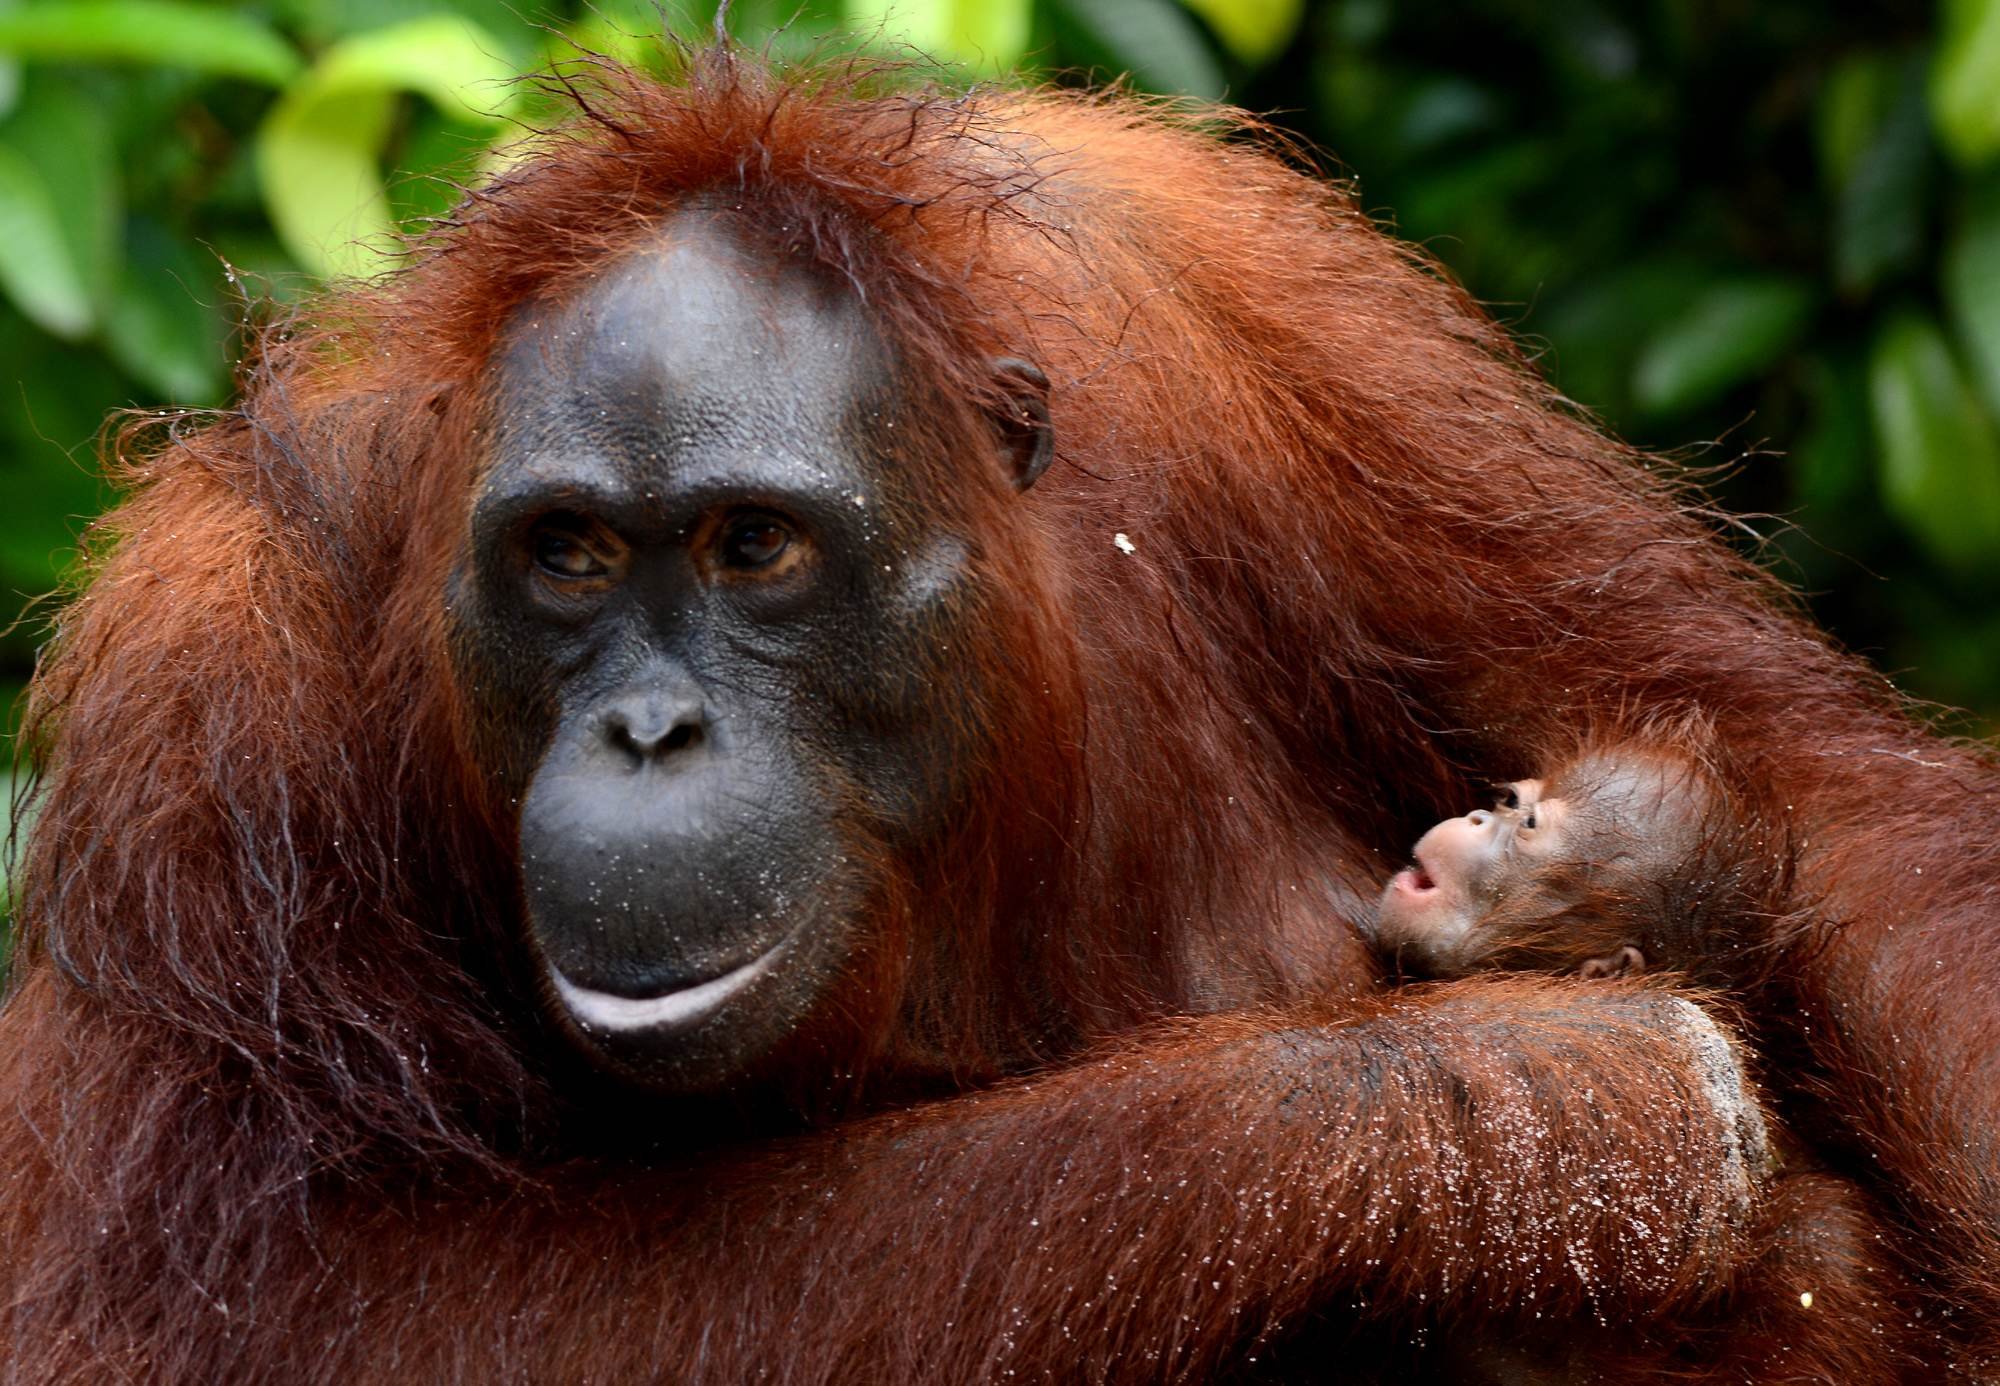 Female orangutan, Amoy, with newborn Alex. Photo by Orangutan Foundation